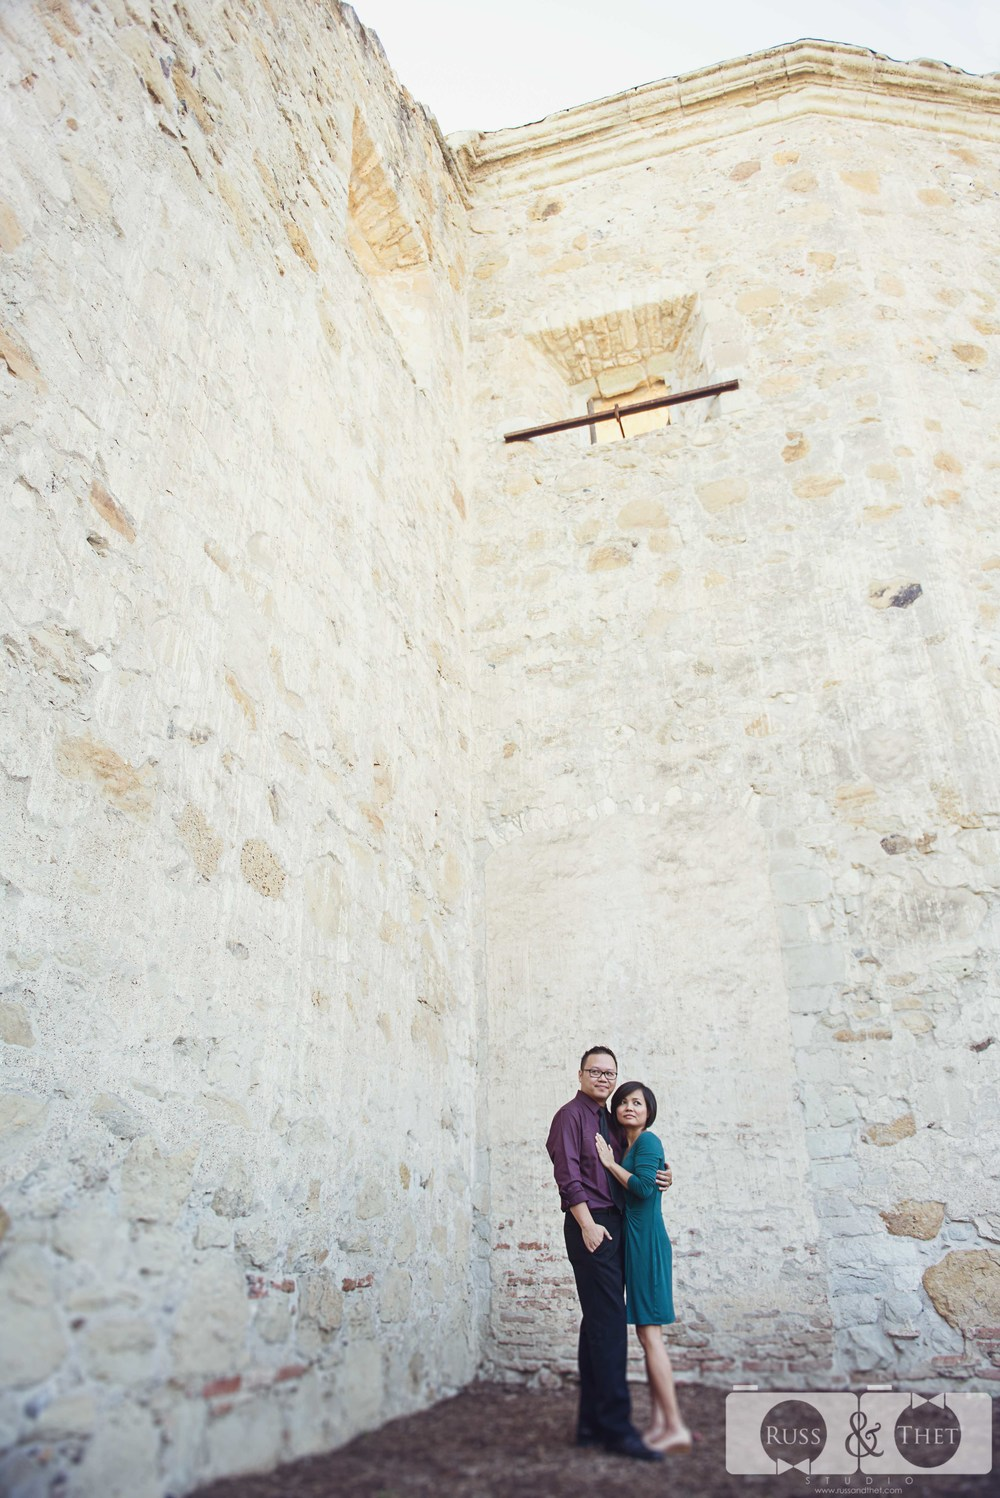 Mission-san-juan-capistrano-engagement-session-1.JPG